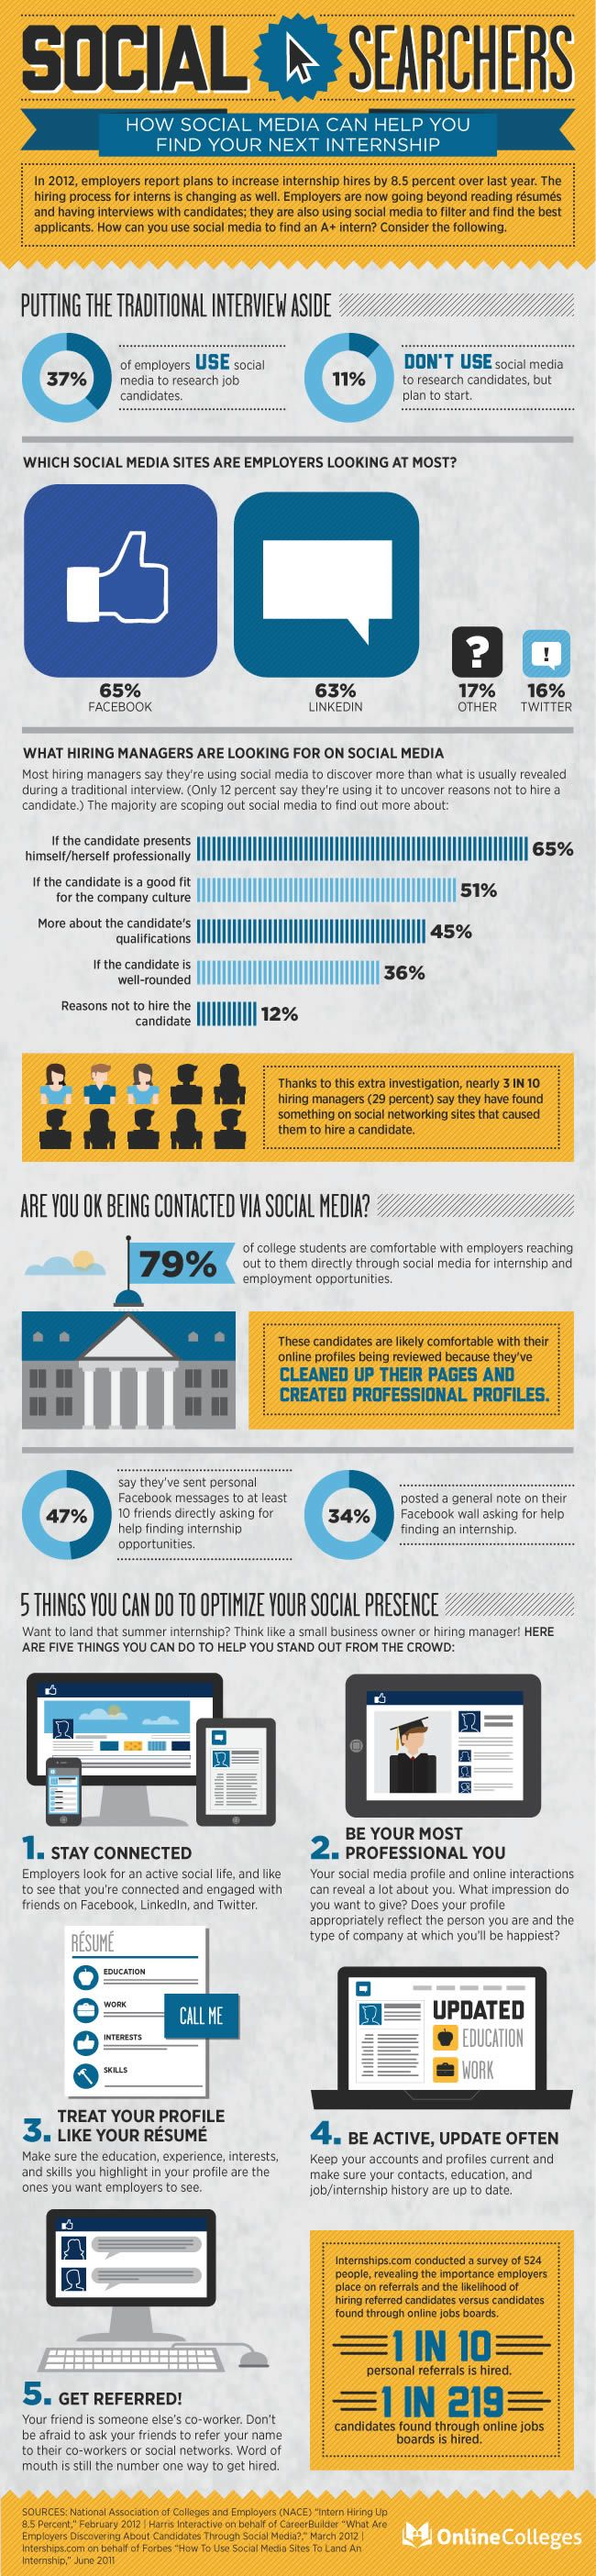 best images about internship advertising bad social searchers how social media can help you your next internship infographic